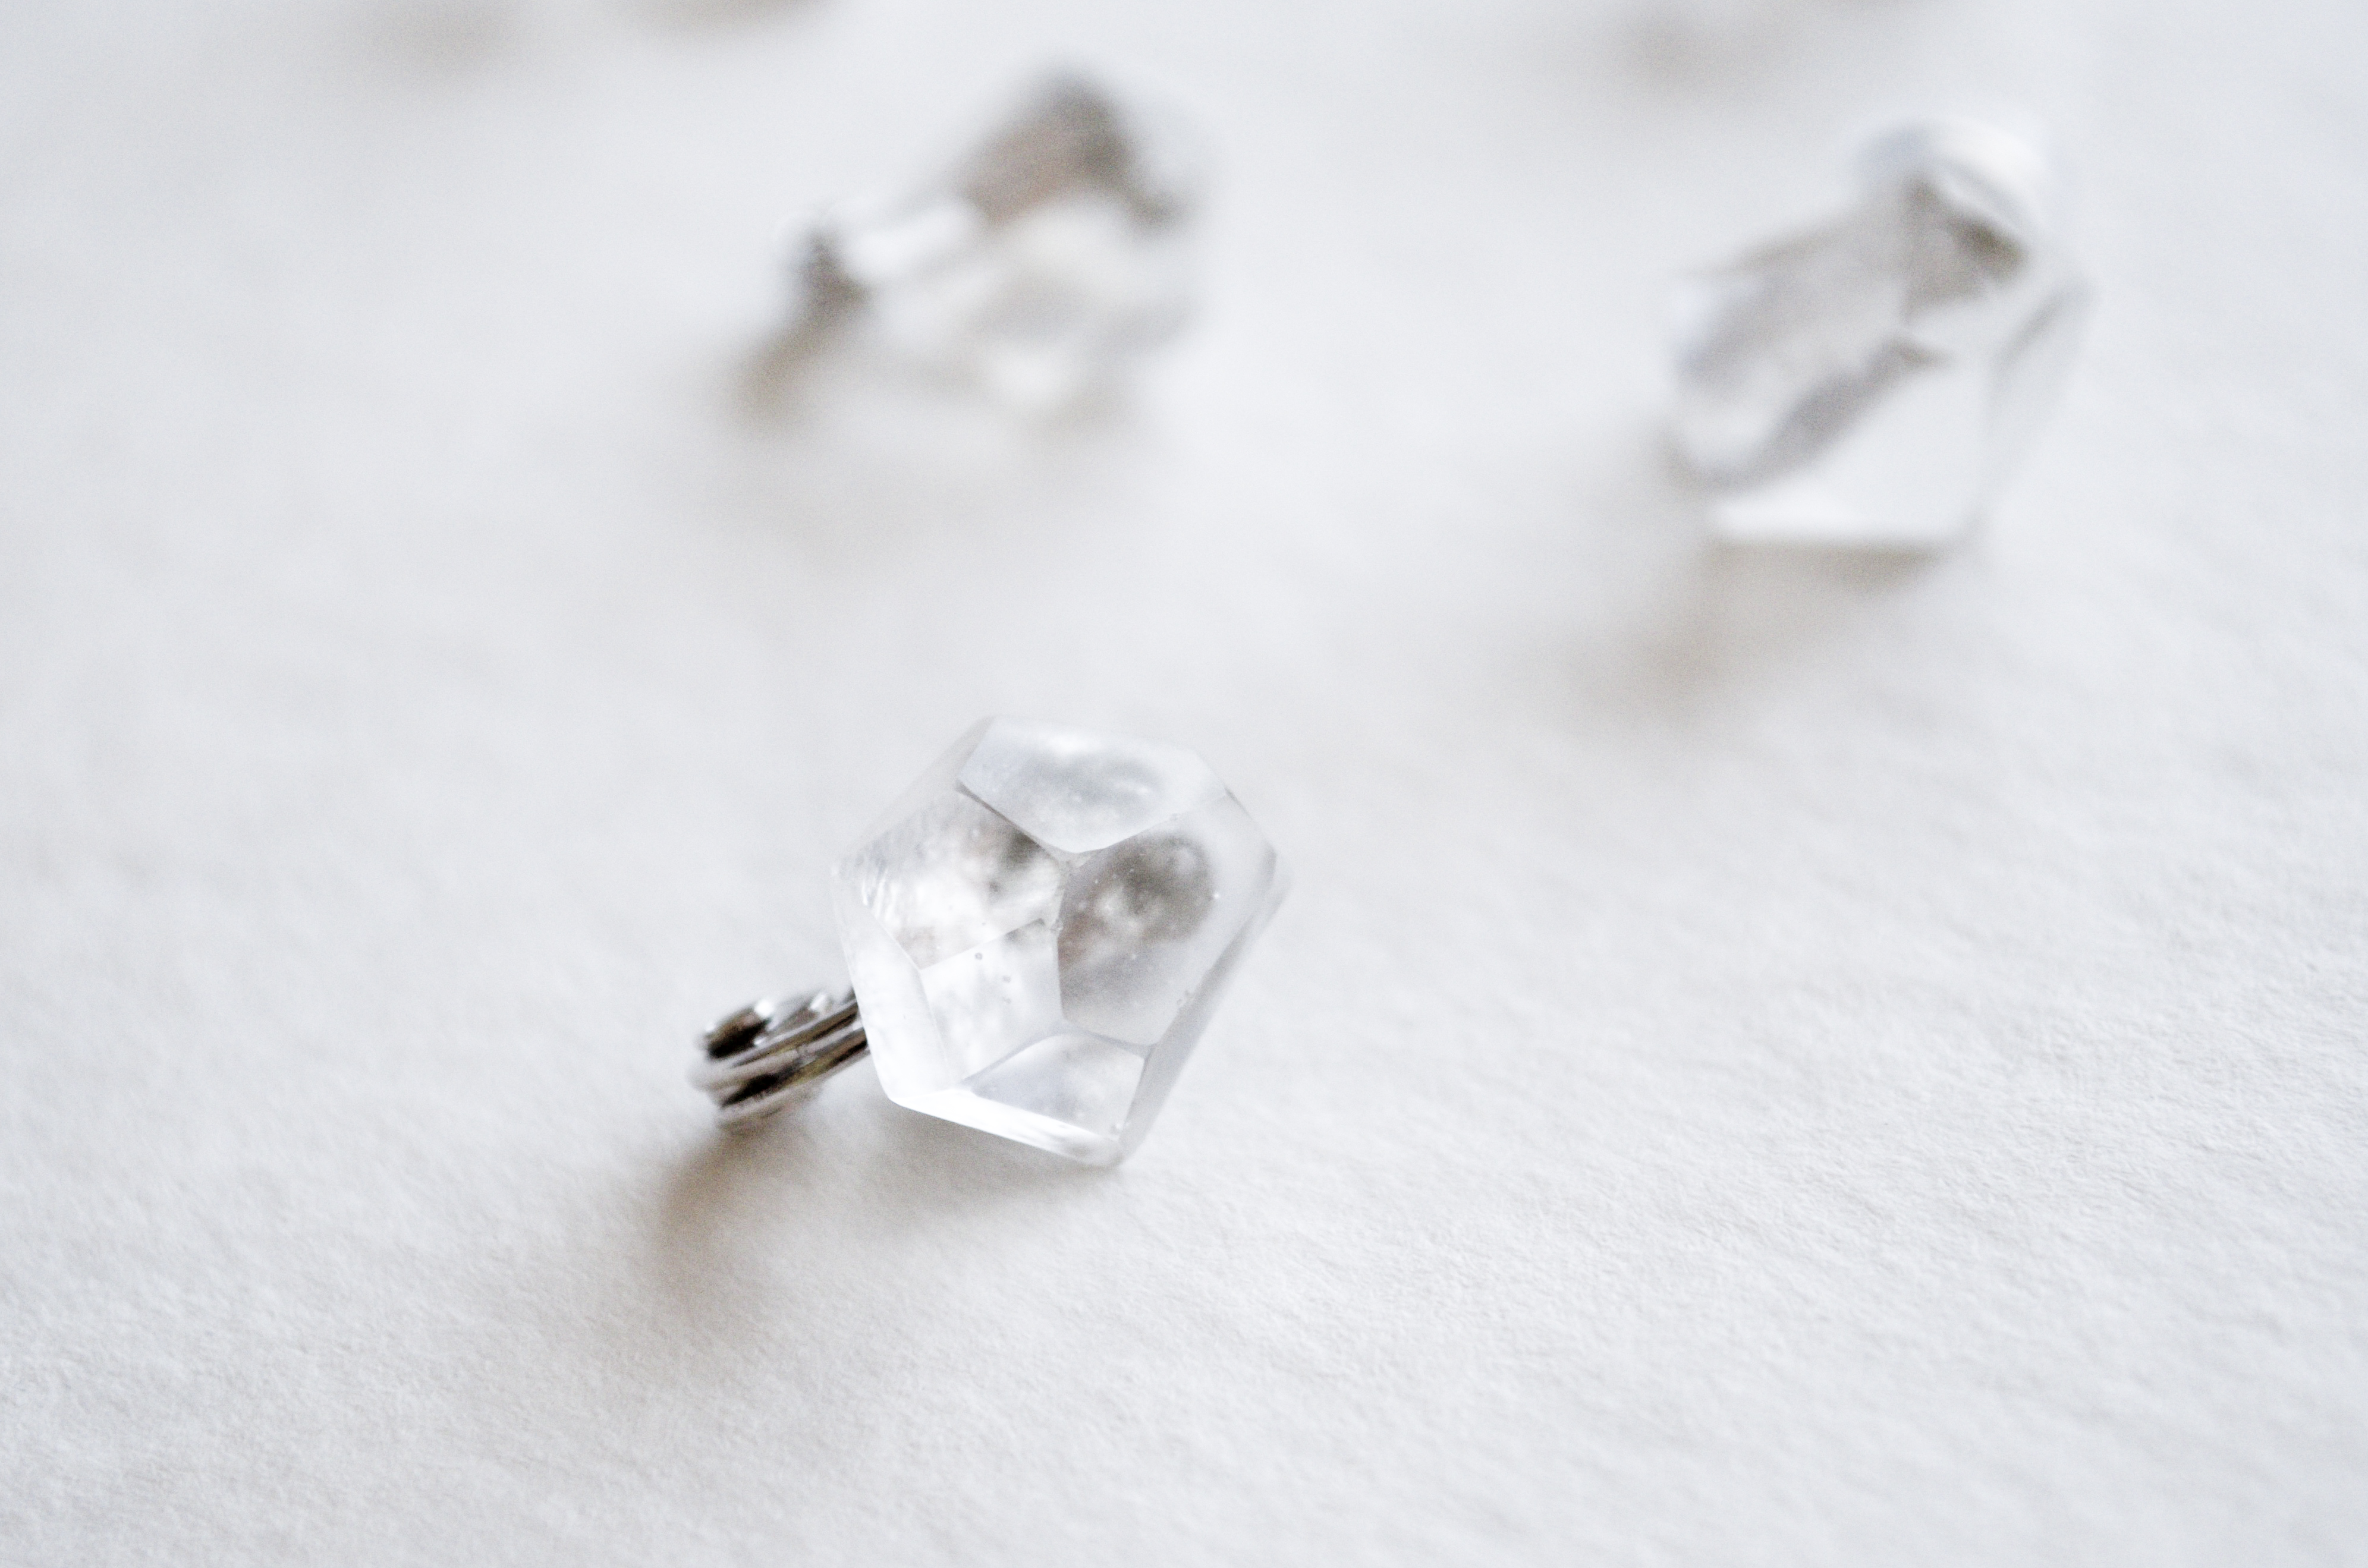 ice earrings